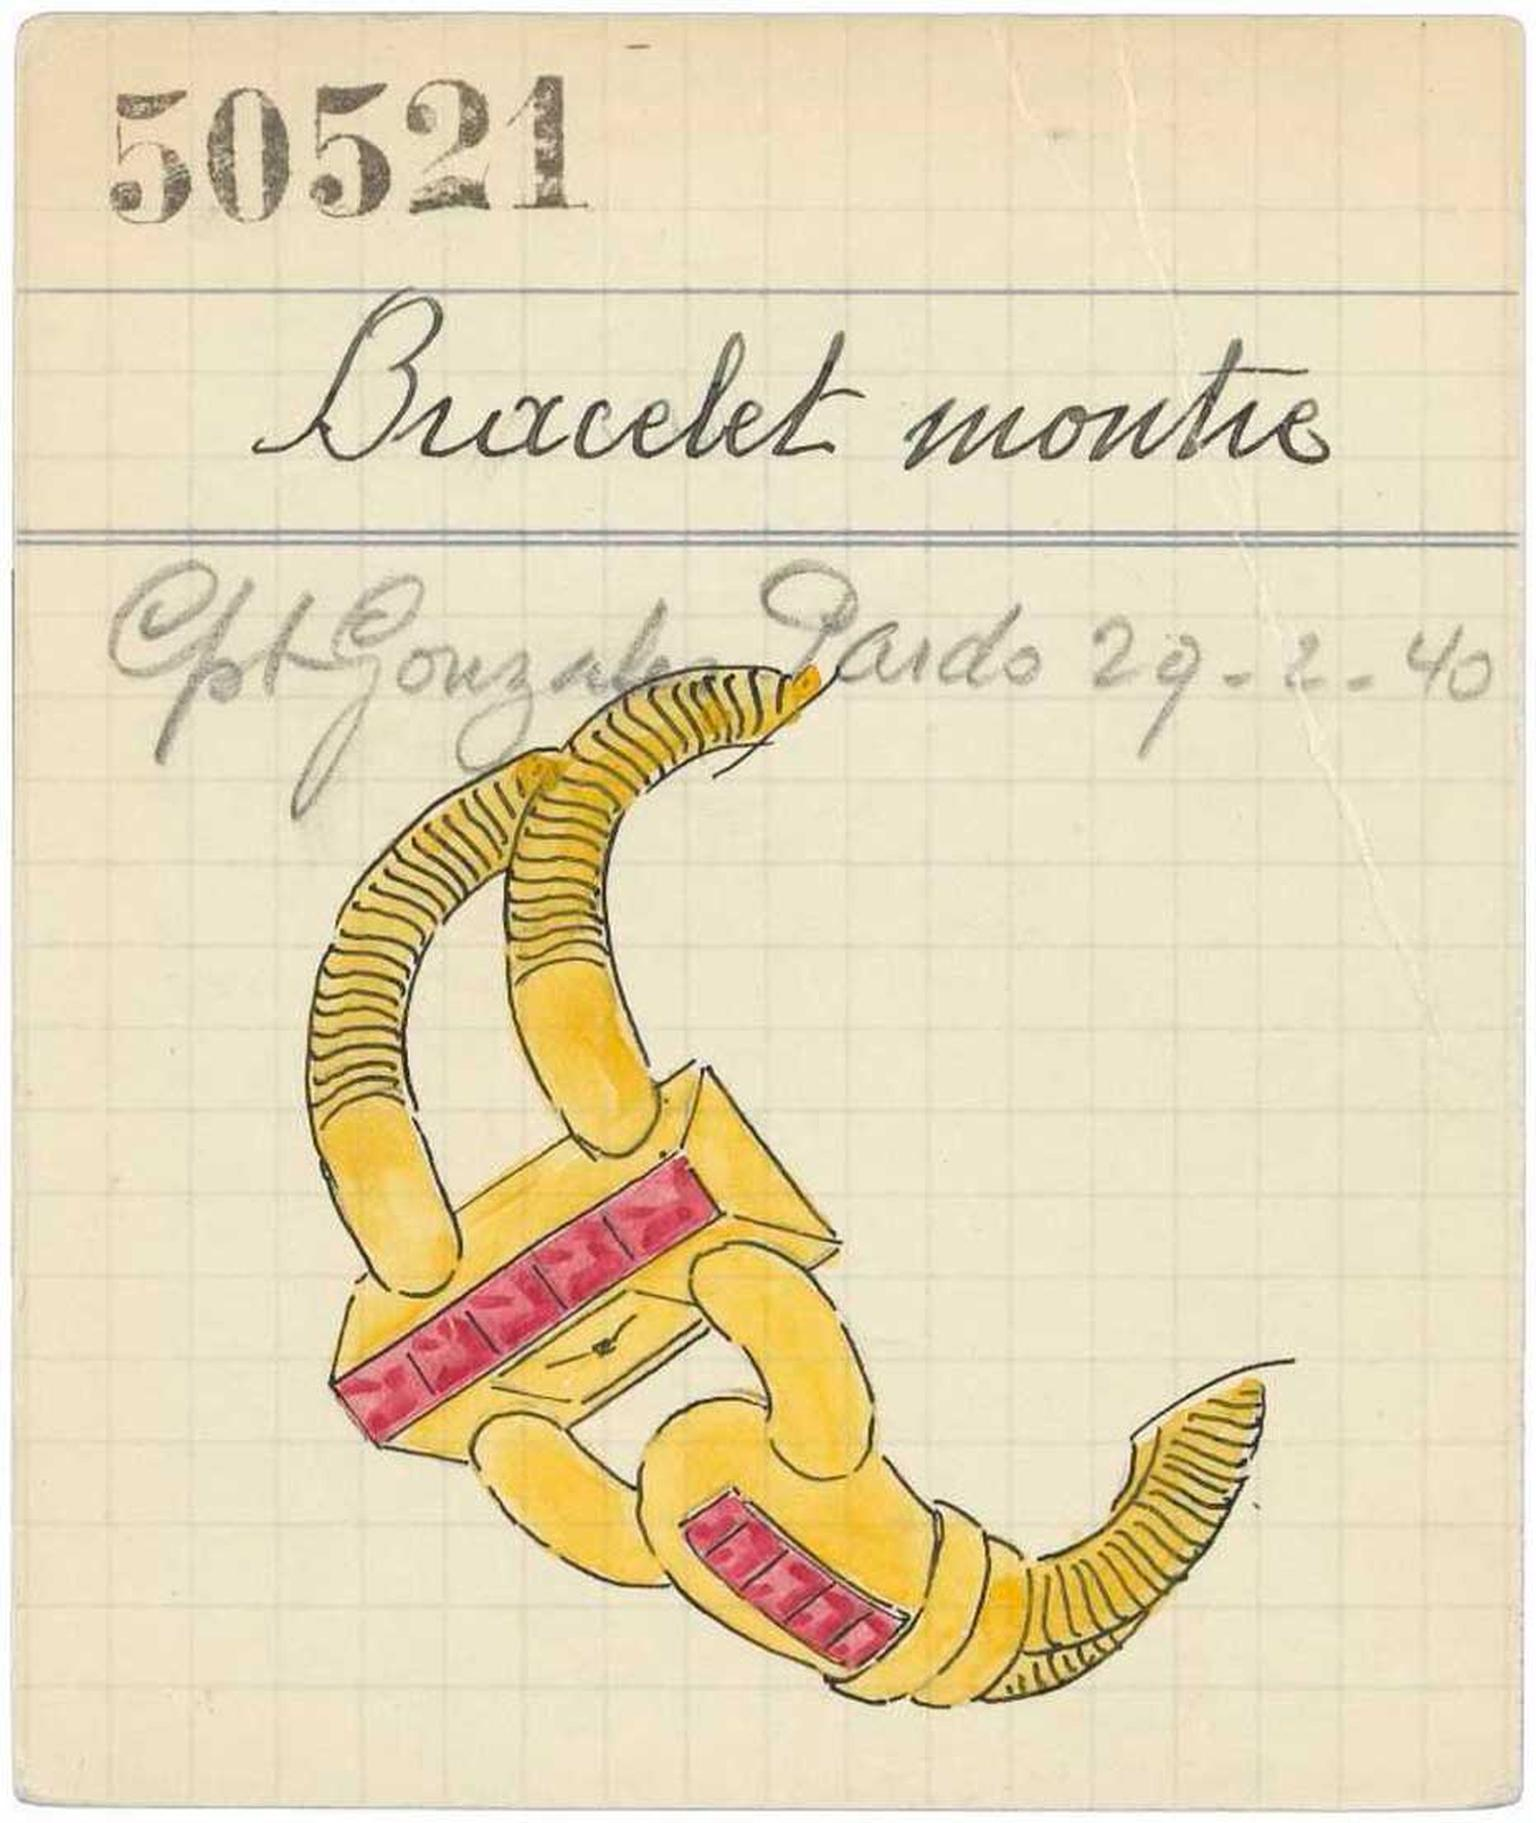 An early retail card featuring a sketch of a Van Cleef & Arpels Cadenas watch, originally created in 1935 and inspired by the American socialite Wallis Simpson.